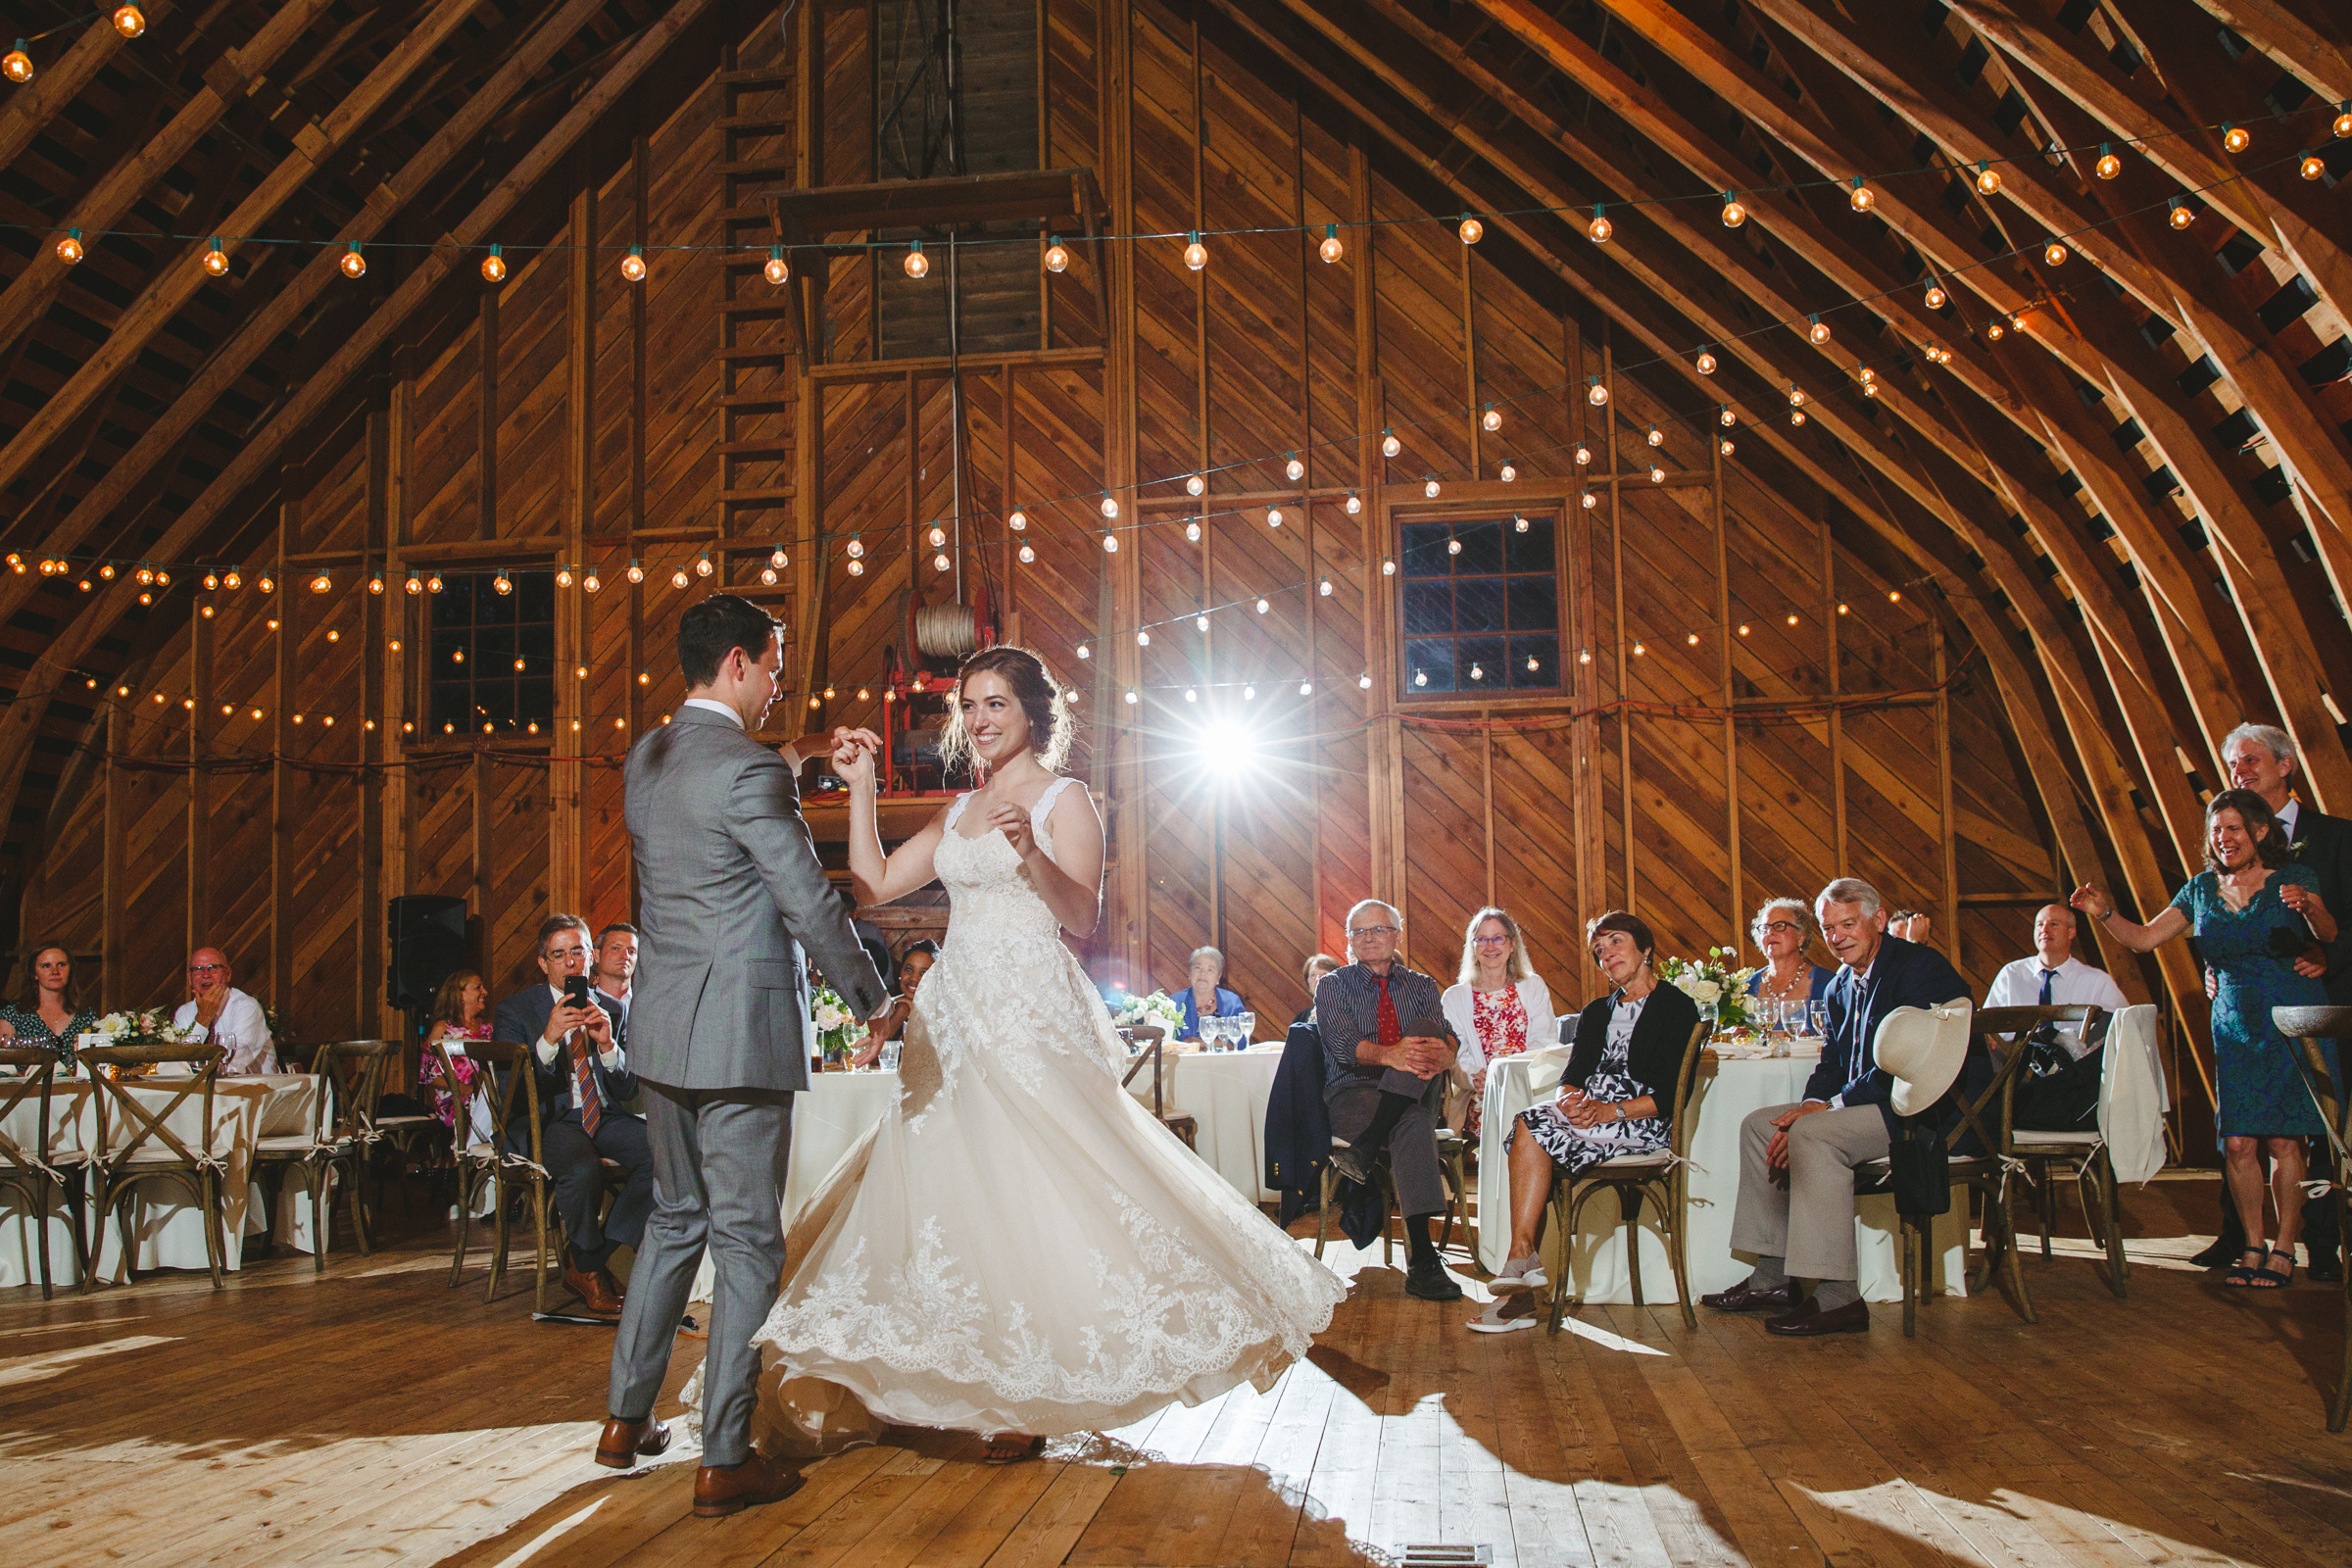 First dance in rustic setting - photo by Satya Curcio Photography